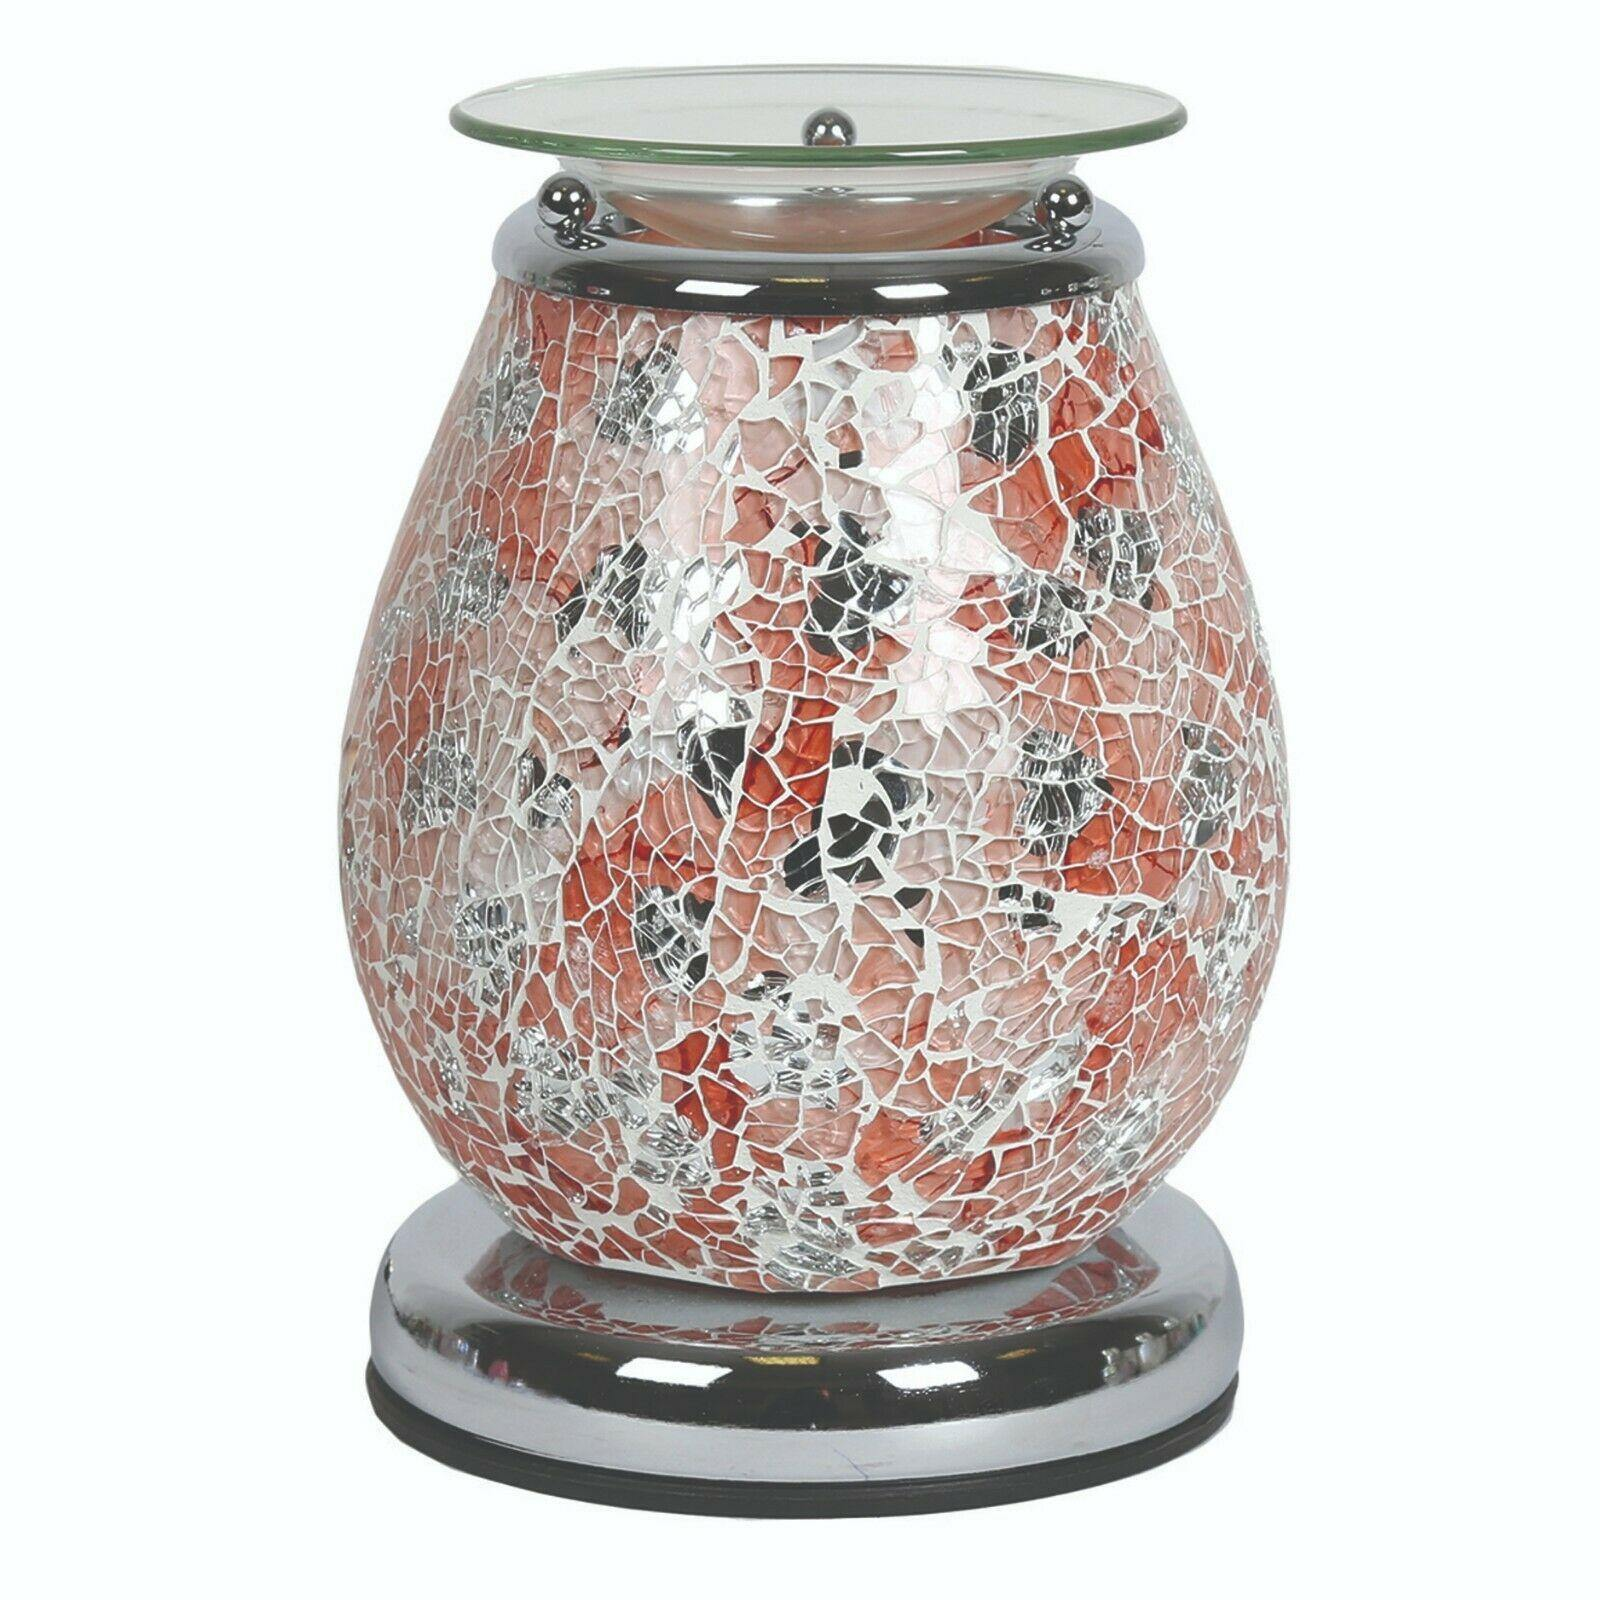 Aroma Accessories Poseidon Mosaic Touch Electric Wax Melt Warmer - TOSYS Candles and Gifts